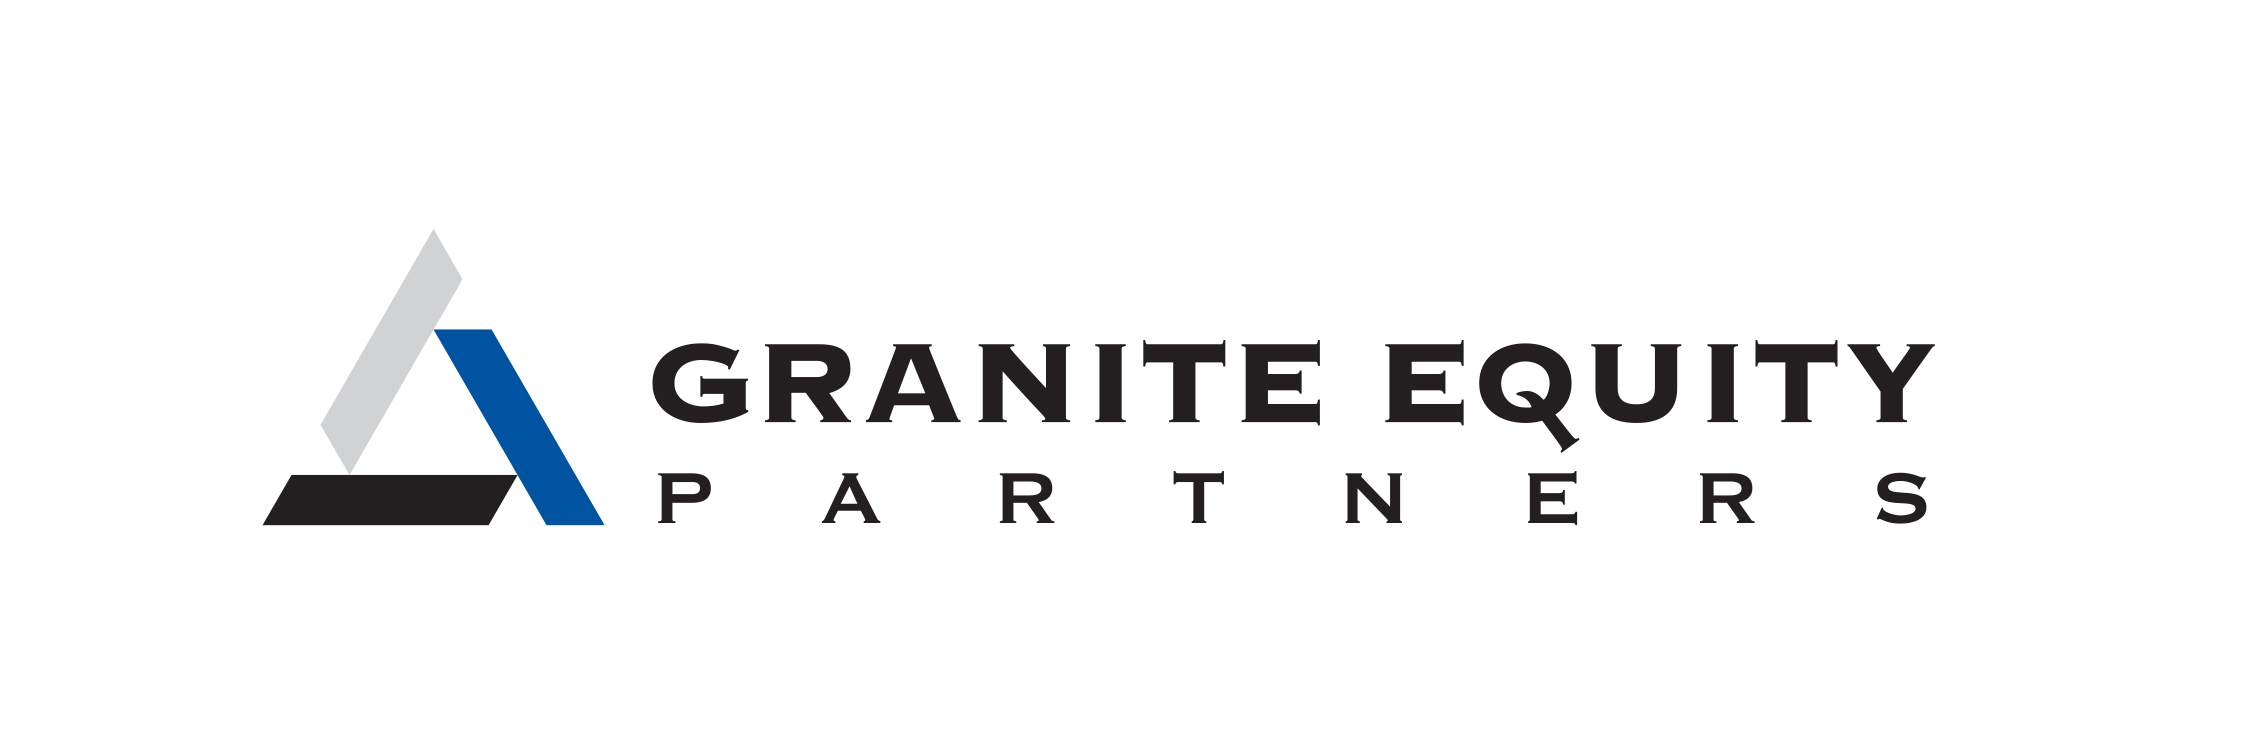 Granite Equity Partners Logo